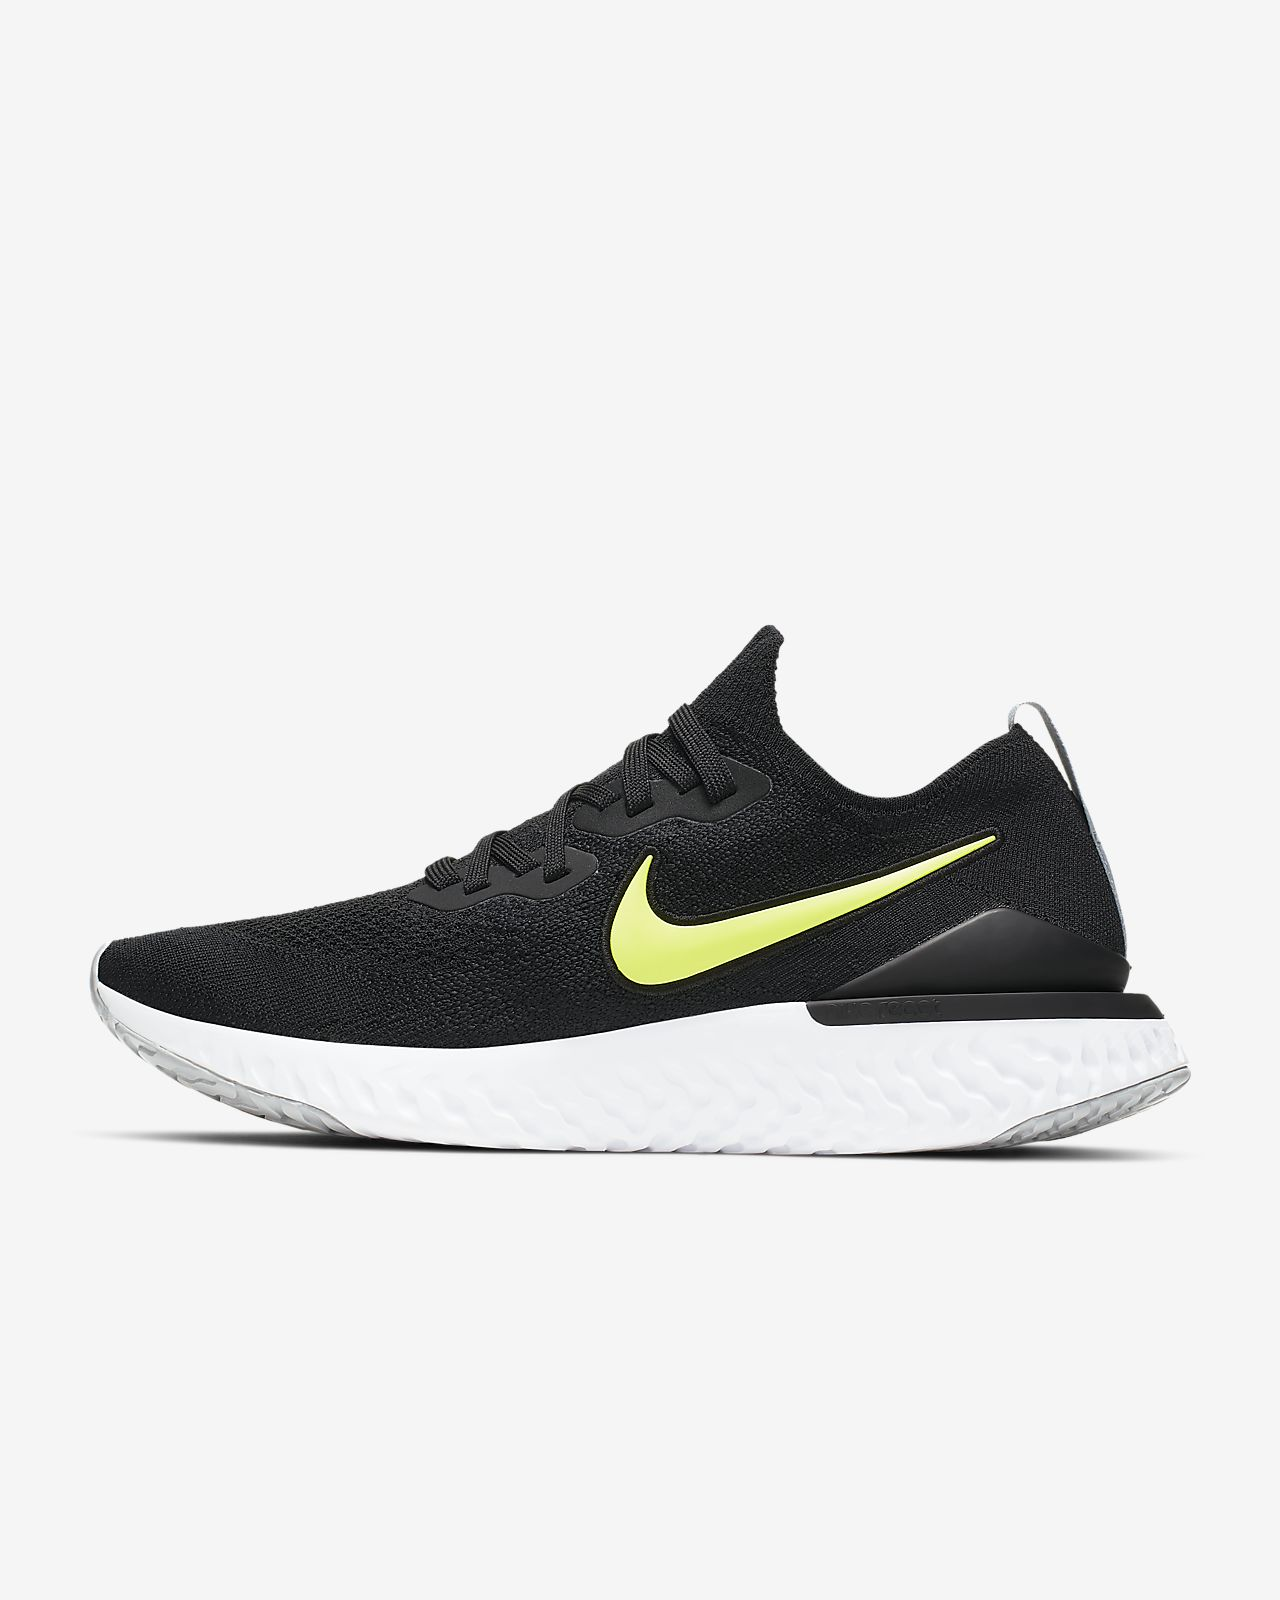 wholesale dealer d4ceb ca90e ... Chaussure de running Nike Epic React Flyknit 2 pour Homme